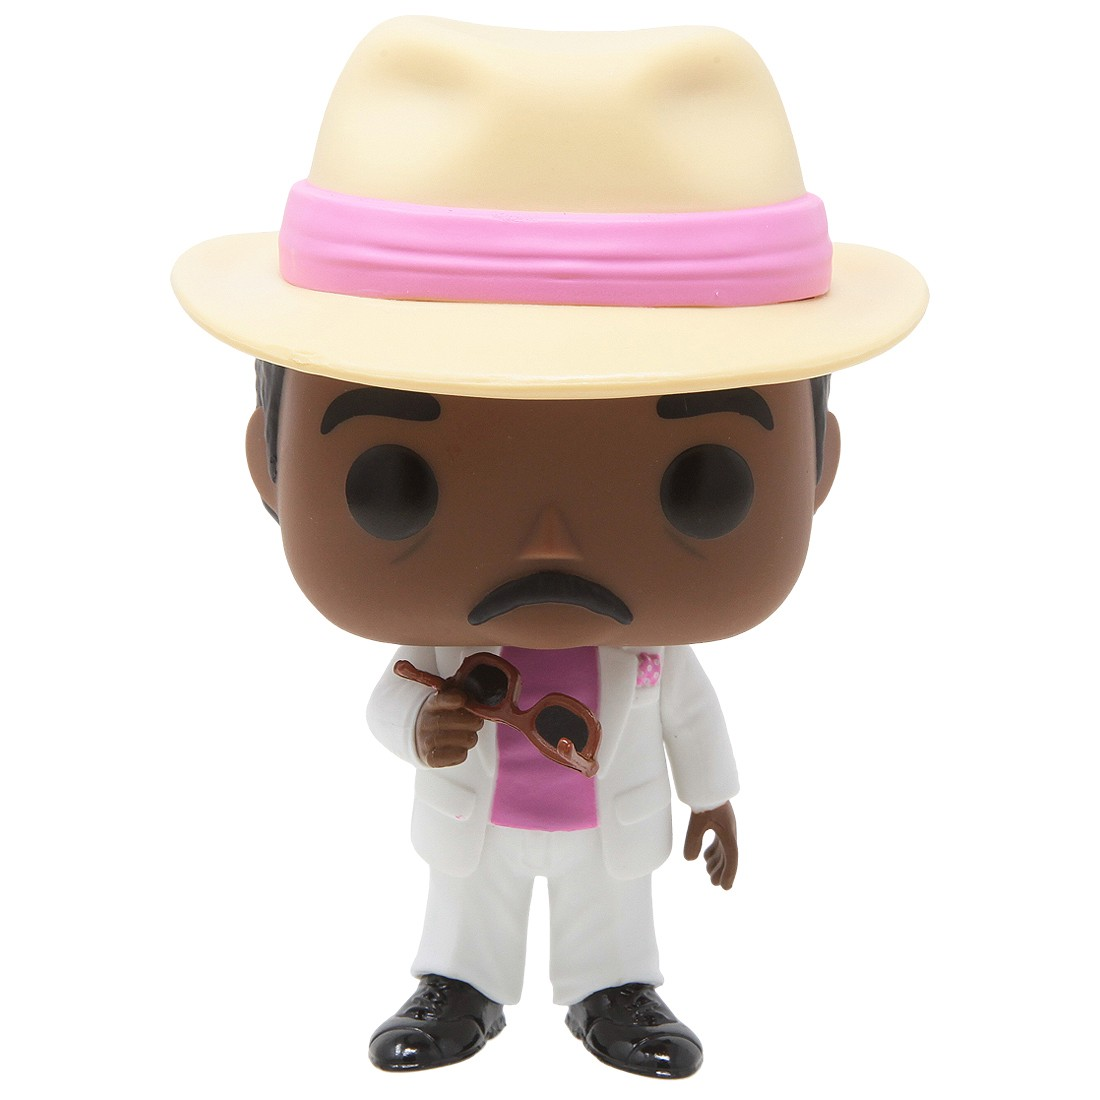 Funko POP TV The Office - Florida Stanley (pink)